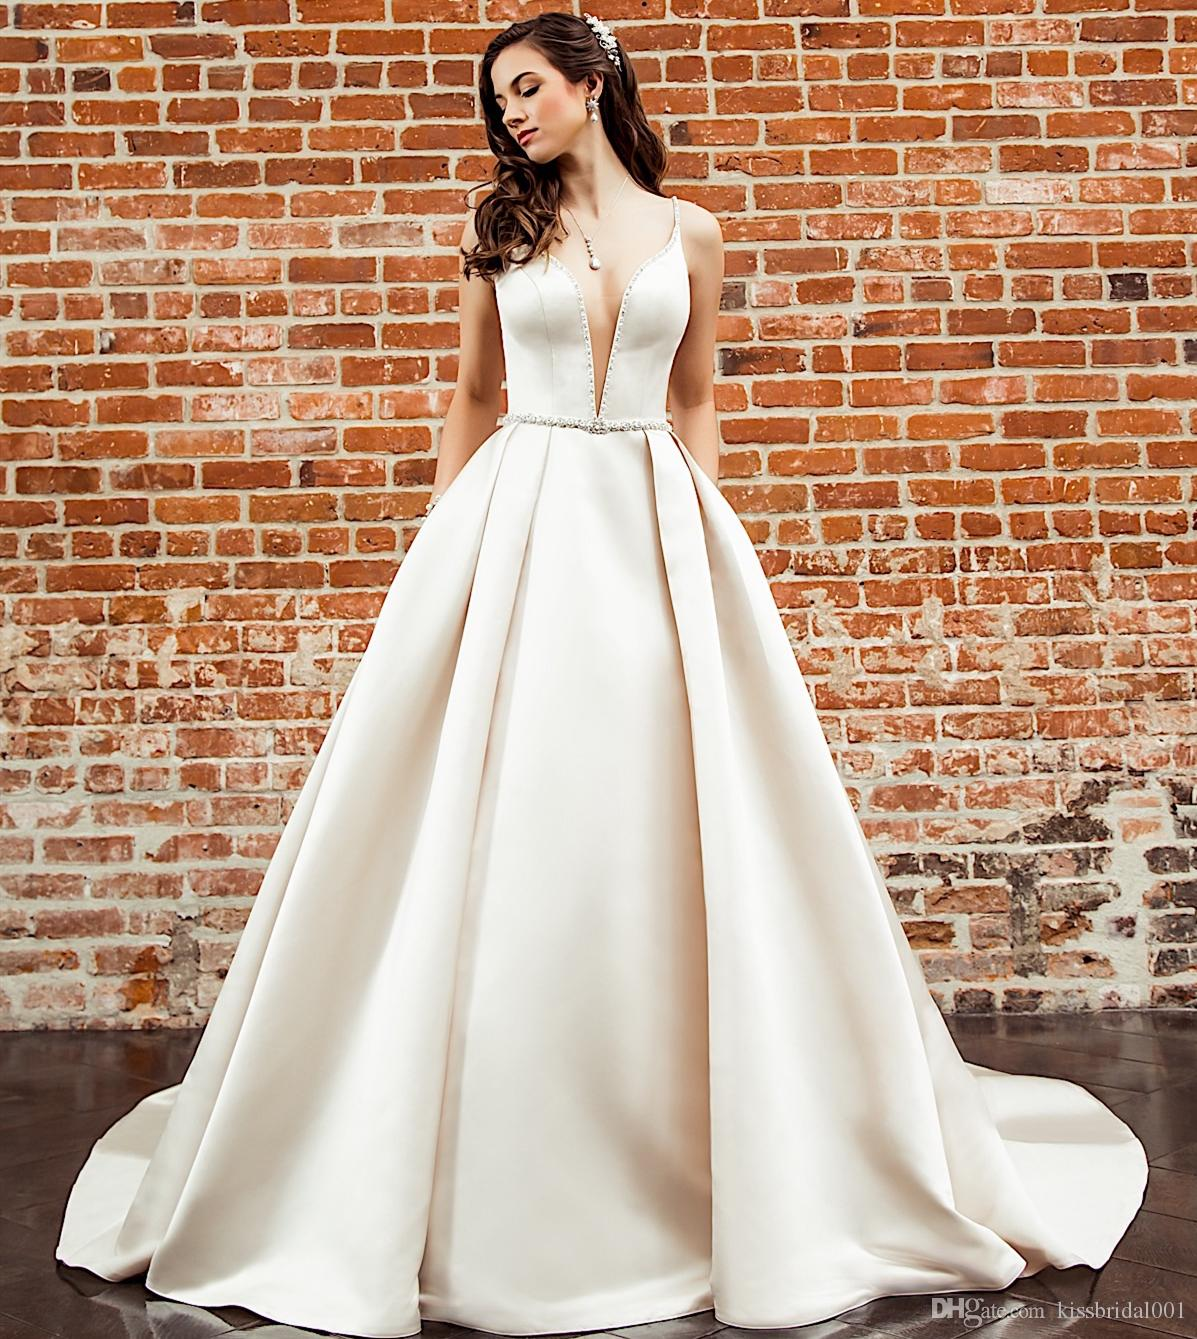 A Line Wedding Dresses Plunging Neckline Beaded Waist Satin Wedding Dress Bridal Gowns Cheap Bride Formal Gown